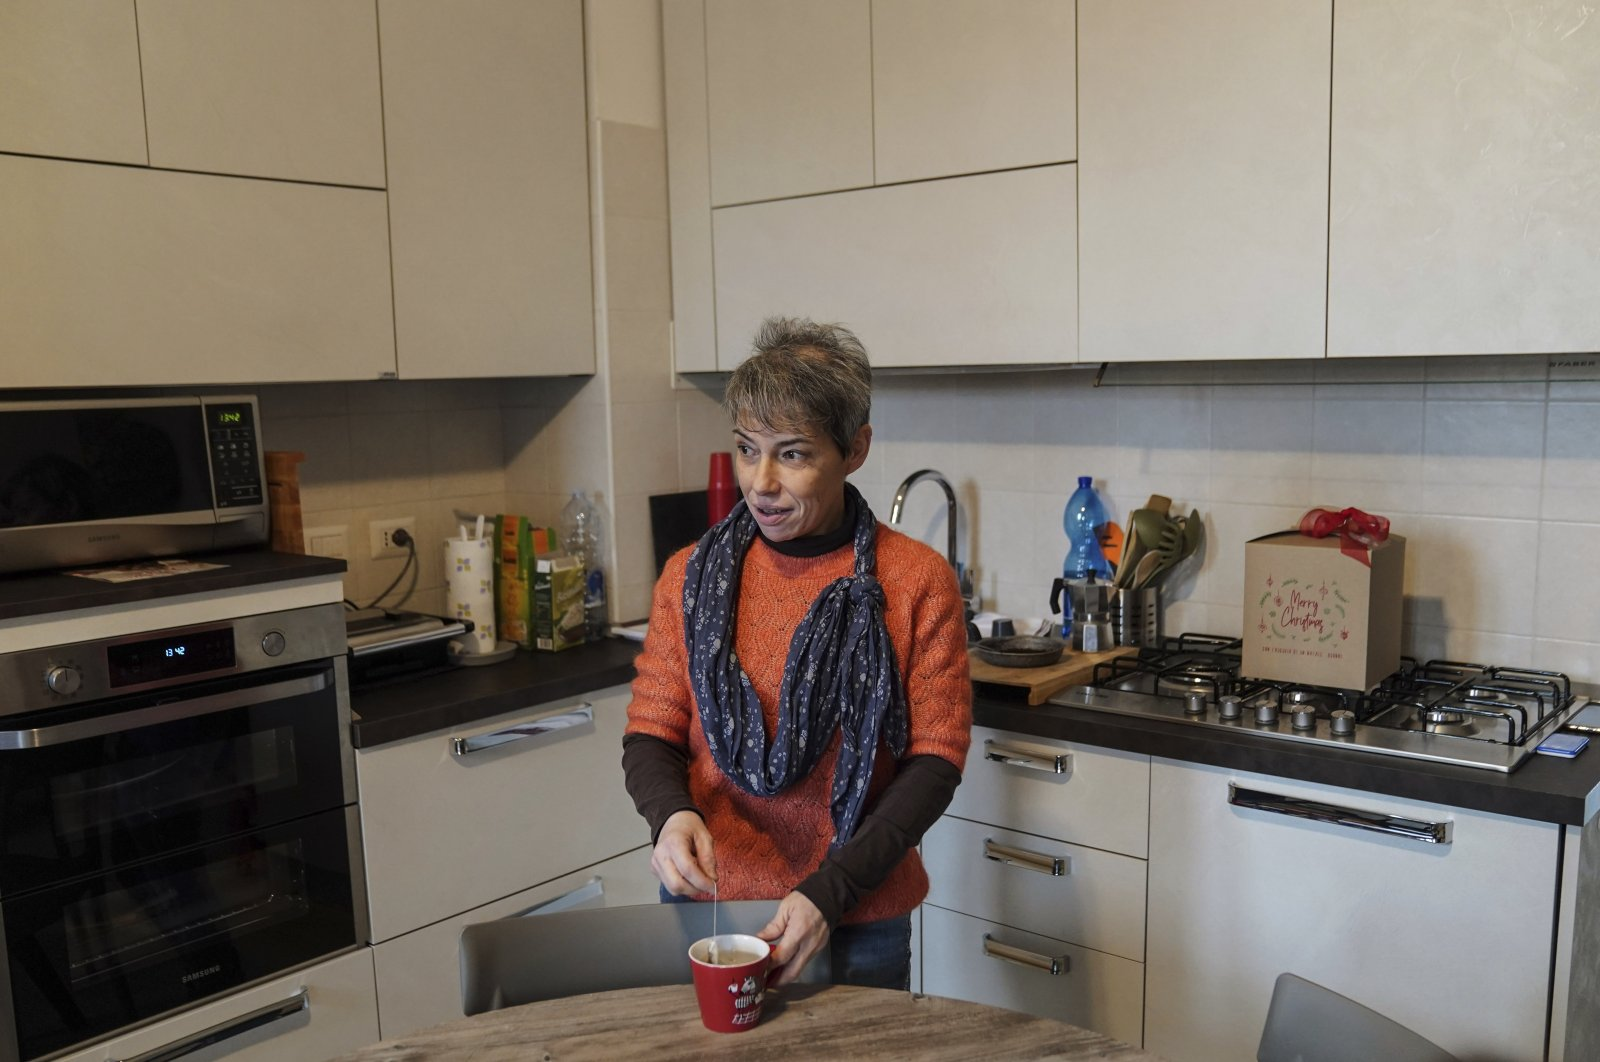 Elena Simone prepares an herbal tea in her kitchen at her house in Novate Milanese, Italy, Dec. 11, 2020. (AP Photo)